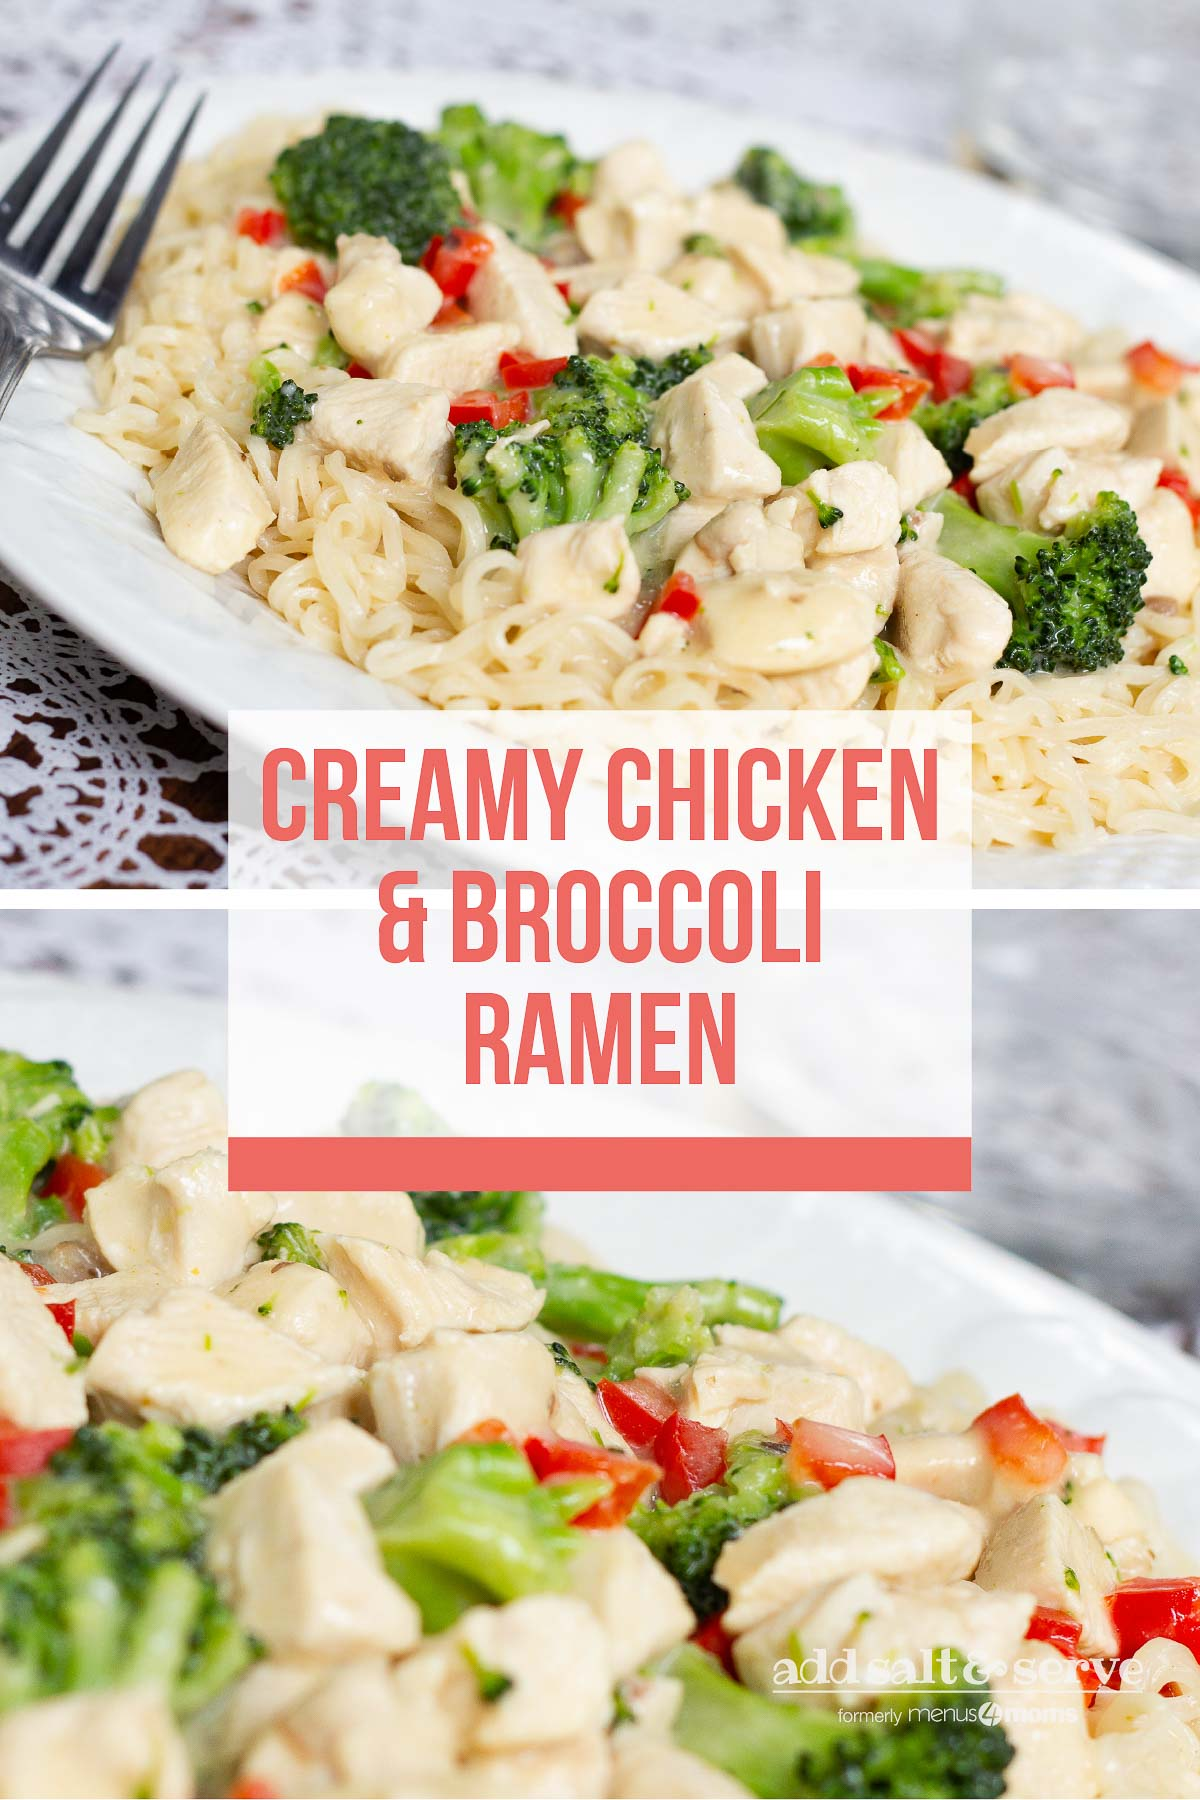 Composite image: Top is A plate with Creamy Chicken and Broccoli Ramen and a fork. Bottom is a closeup of Creamy Chicken and Broccoli Ramen. Text is Creamy Chicken & Broccoli Ramen - Add Salt & Serve logo